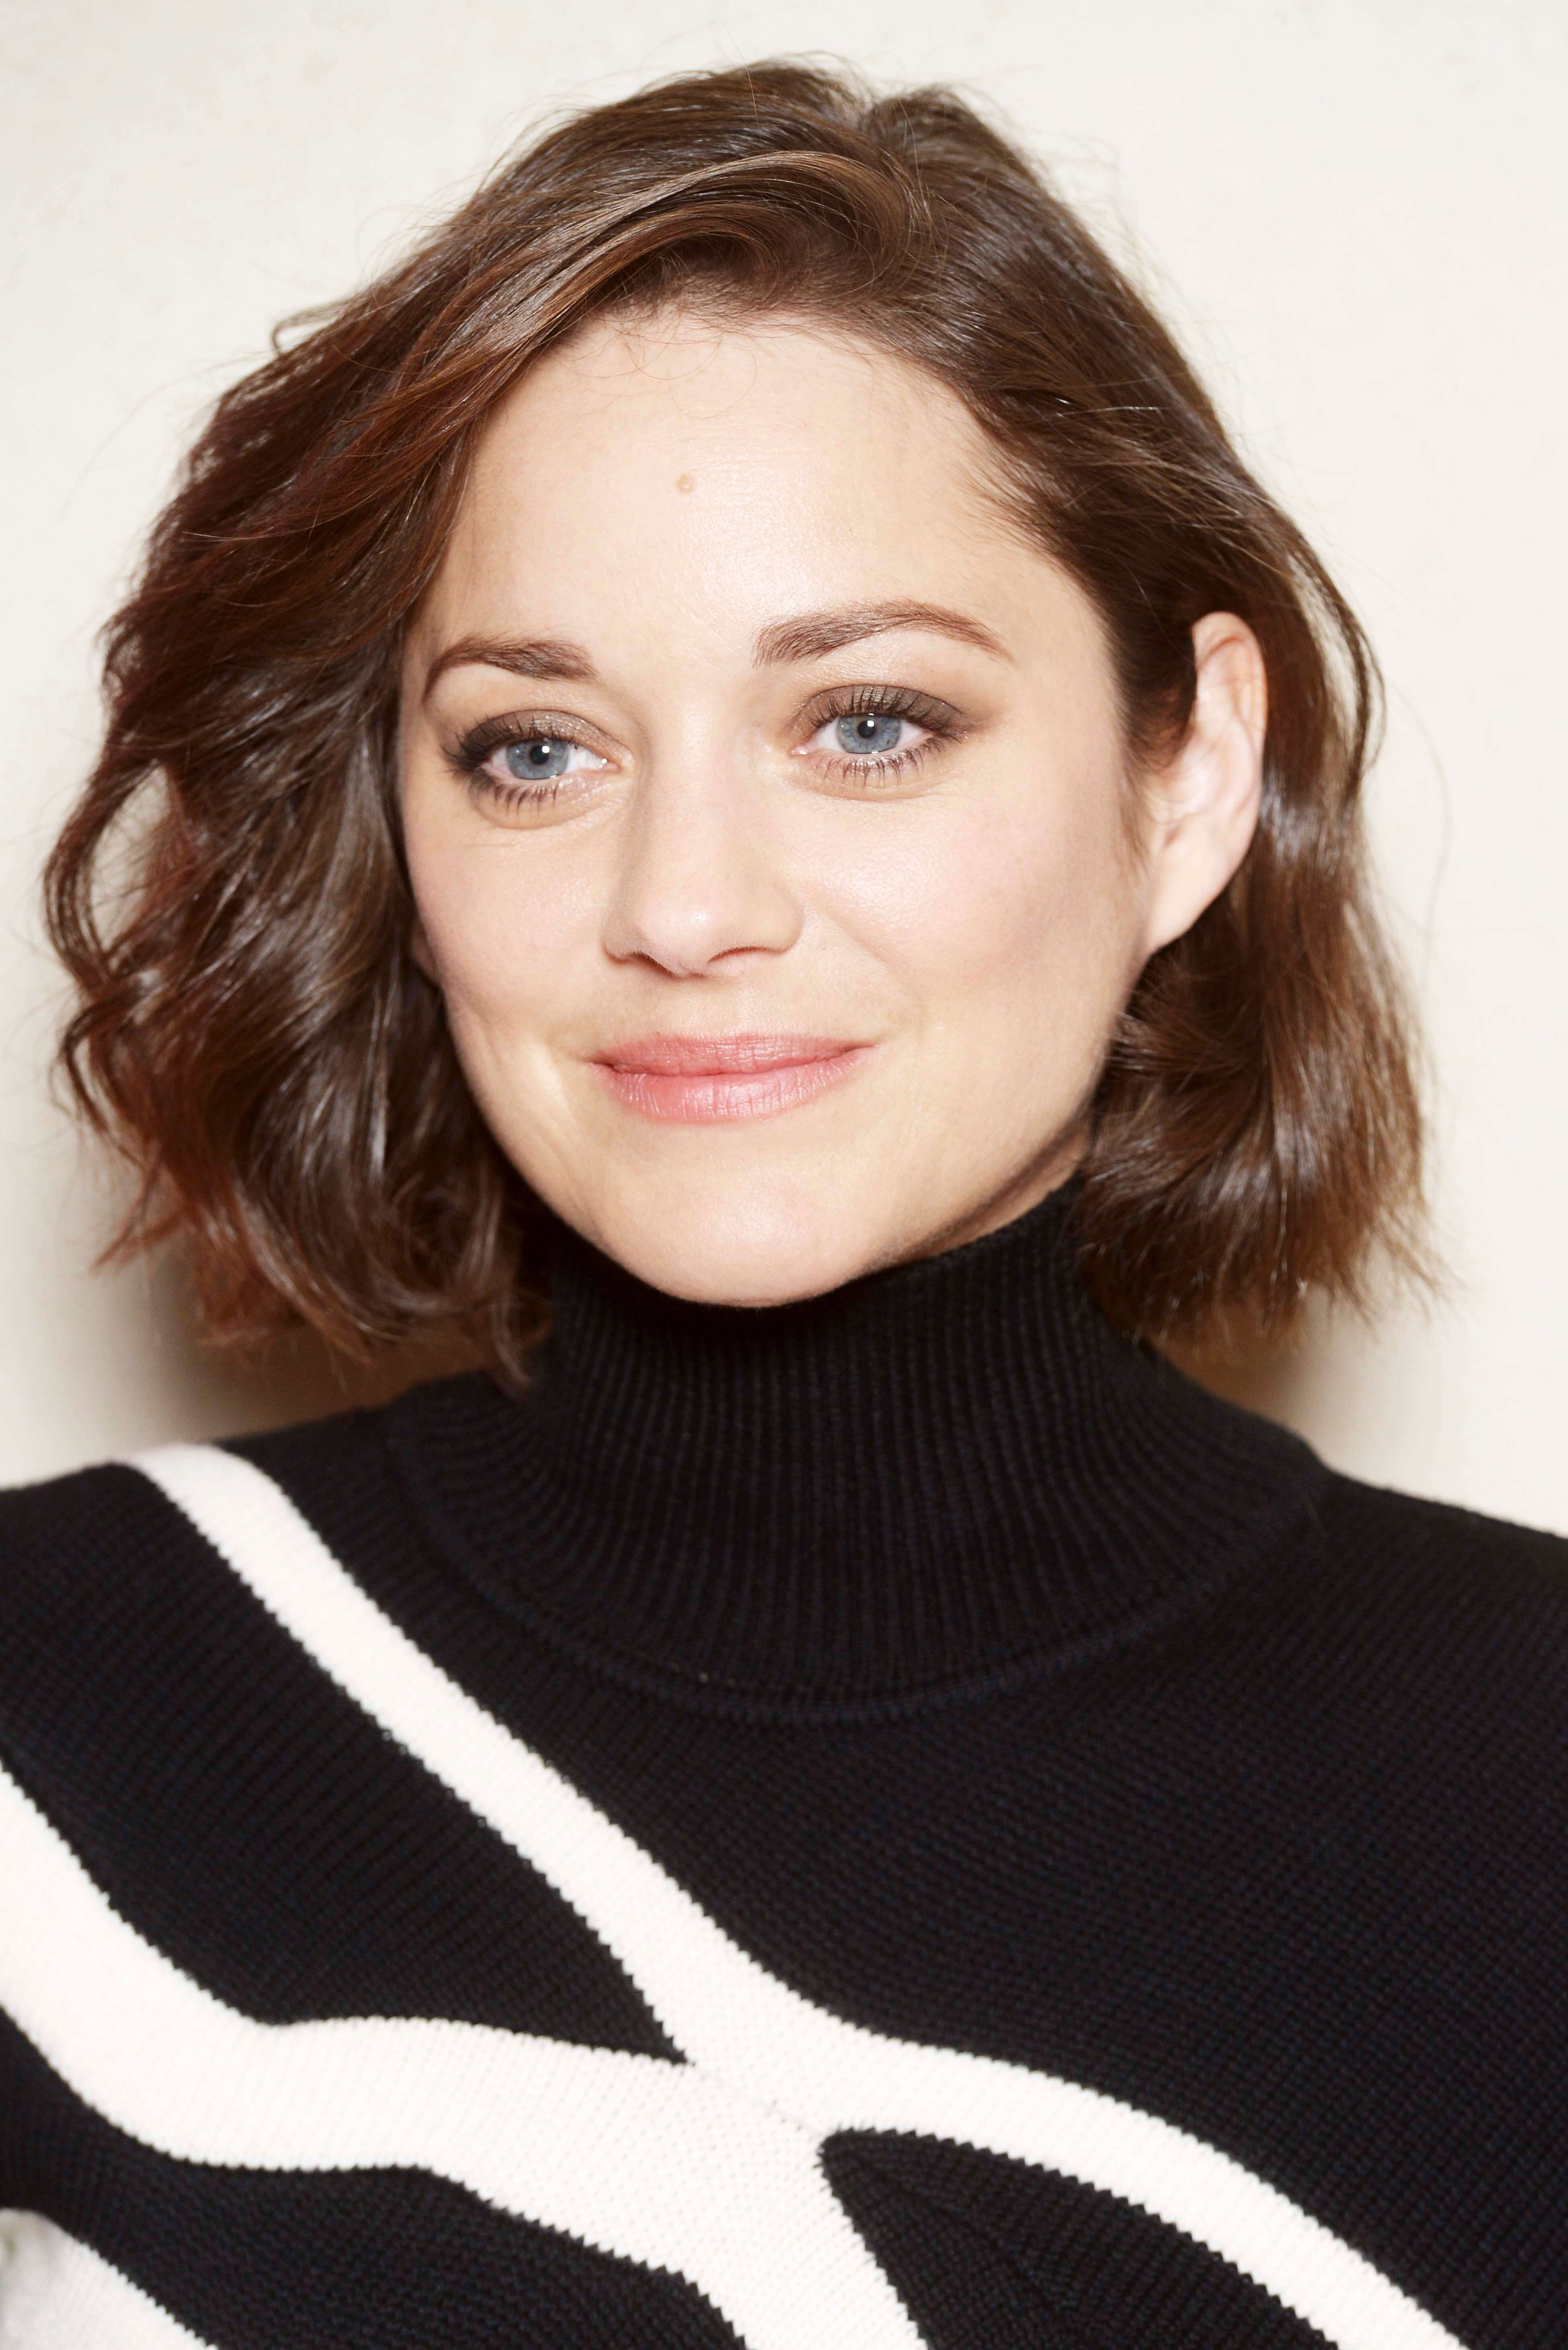 12 flattering short hairstyles for square faces you need to see